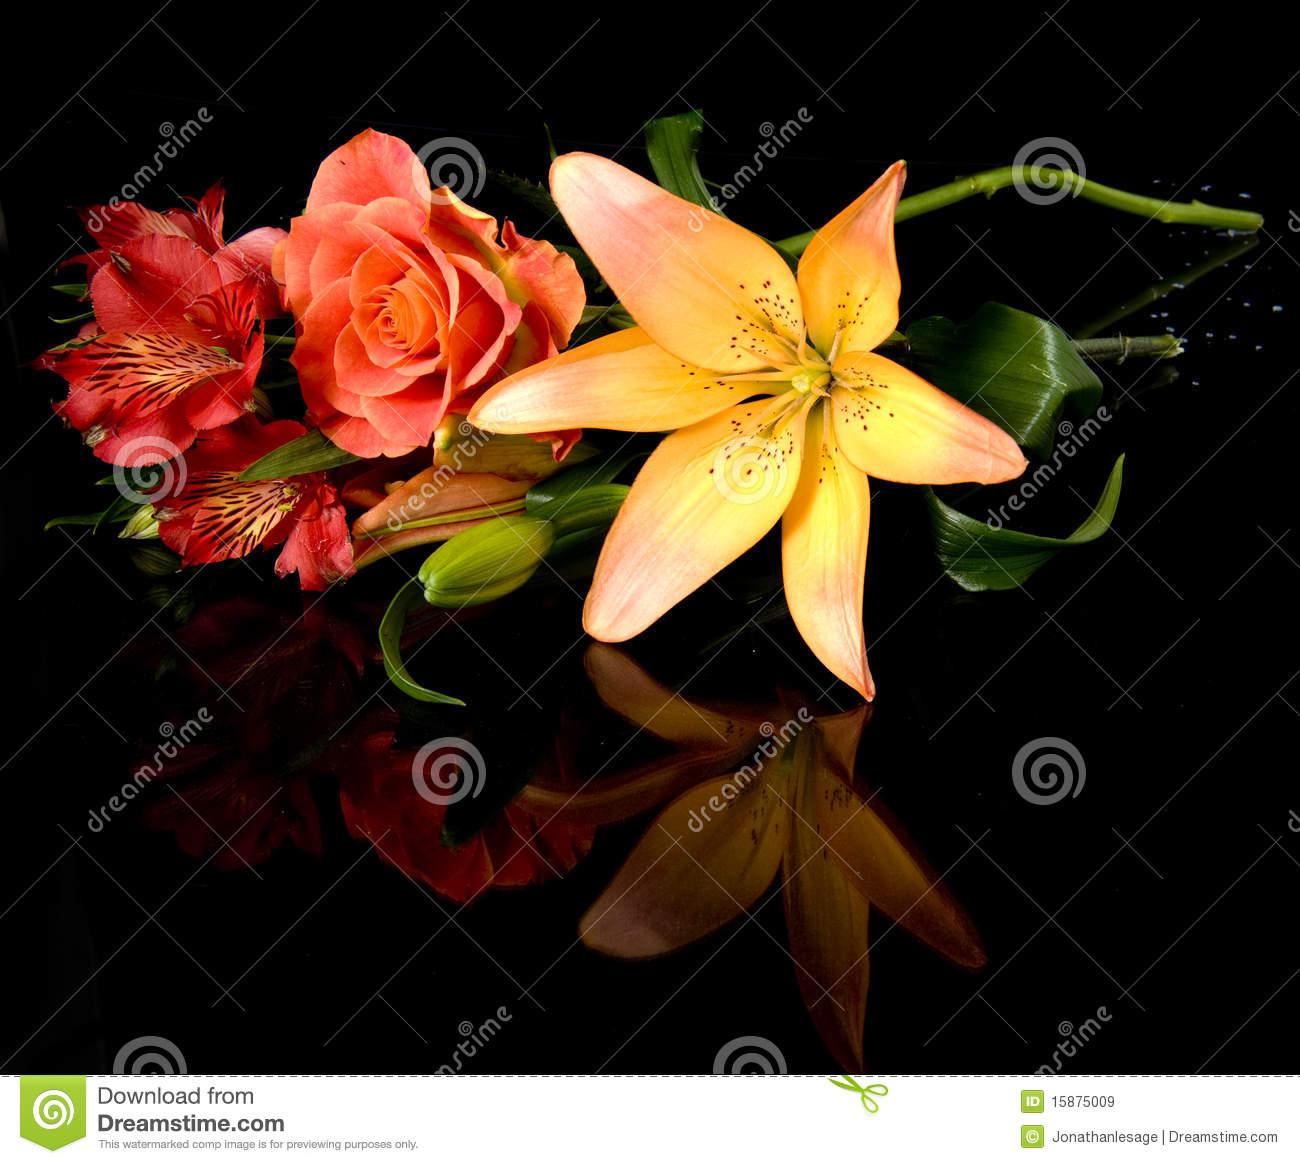 Red Flower Fleur Rouge Lys Buch Bouquet Stock Image Image Of